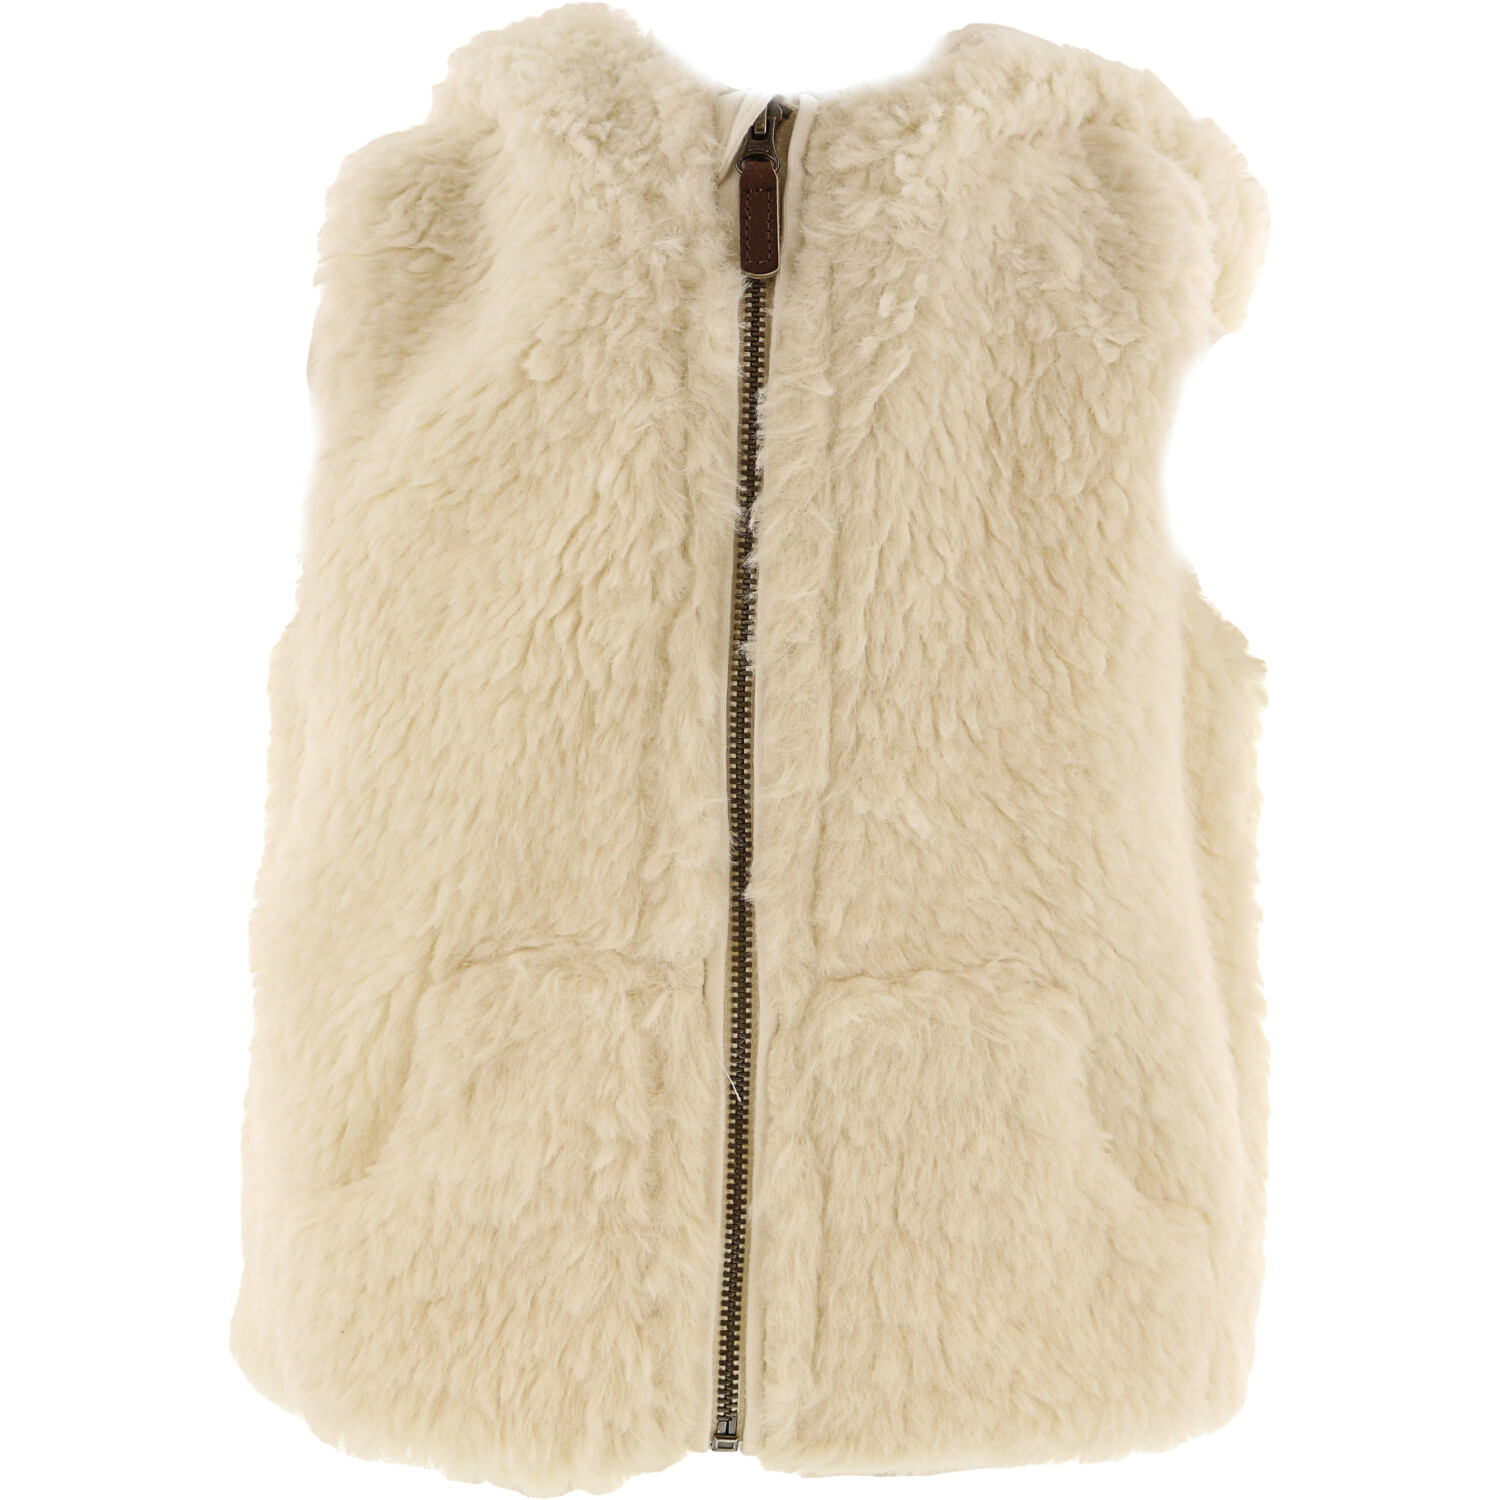 Janie And Jack Girl's White Hooded Sherpa Vest - 0-3 Months